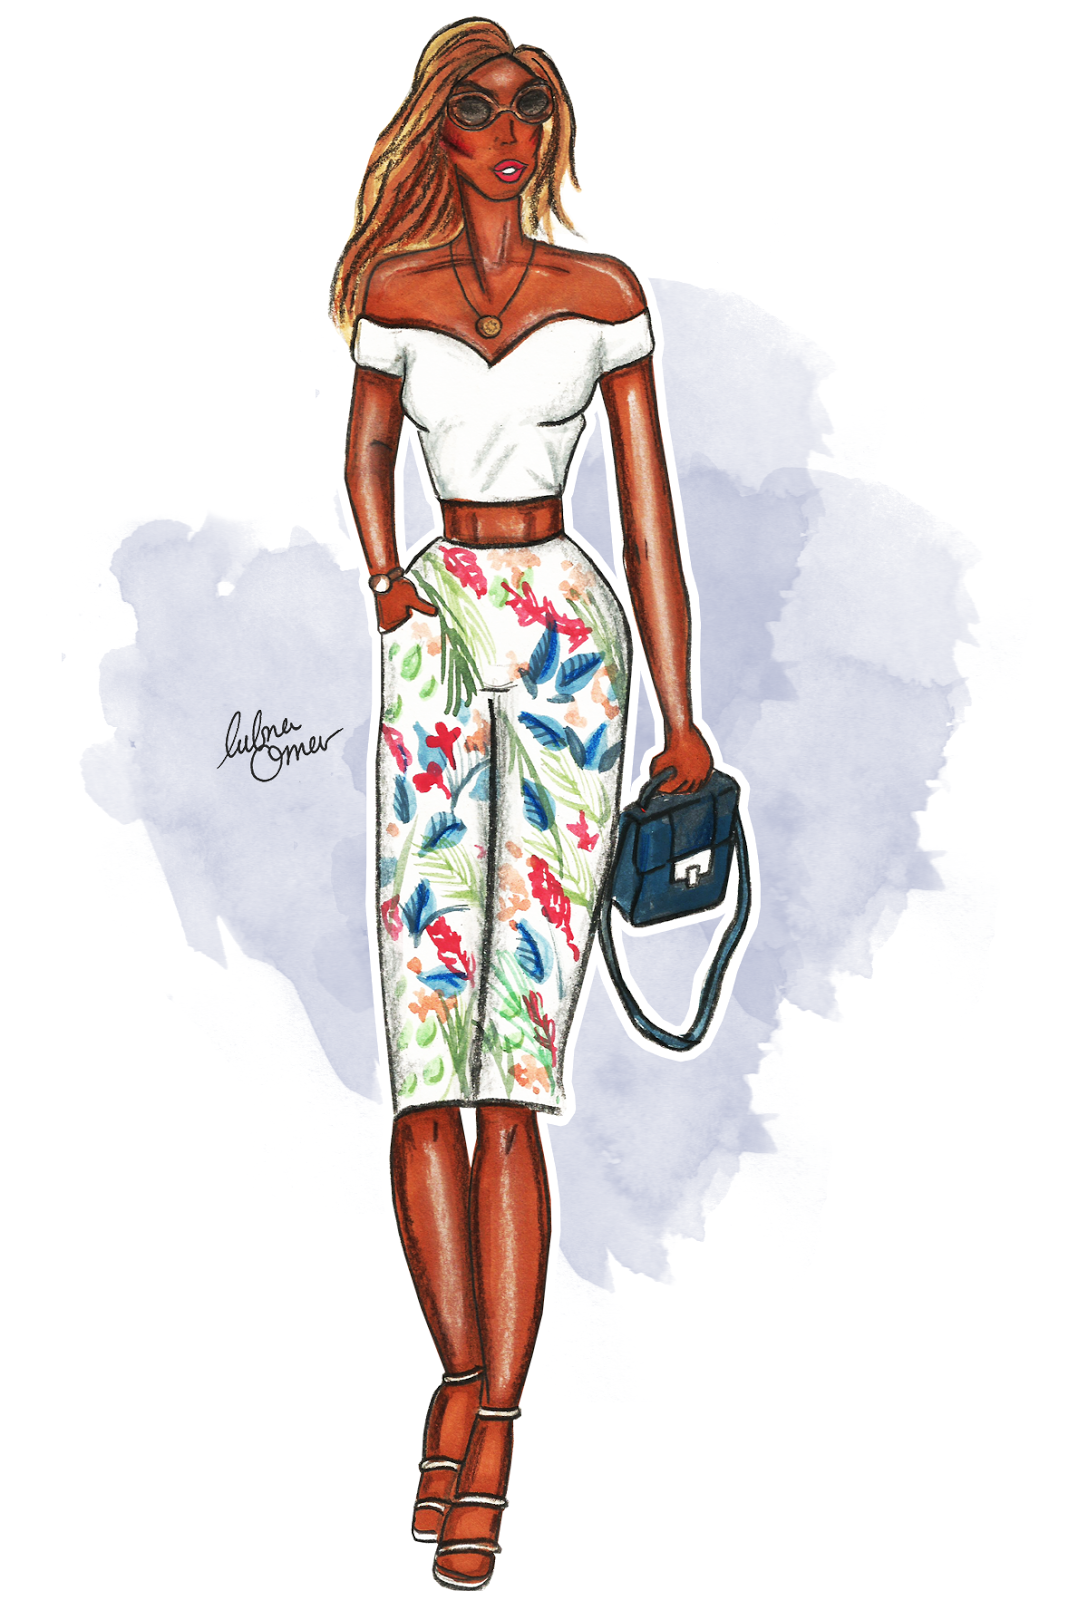 glamorous outfit illustration lubna omar